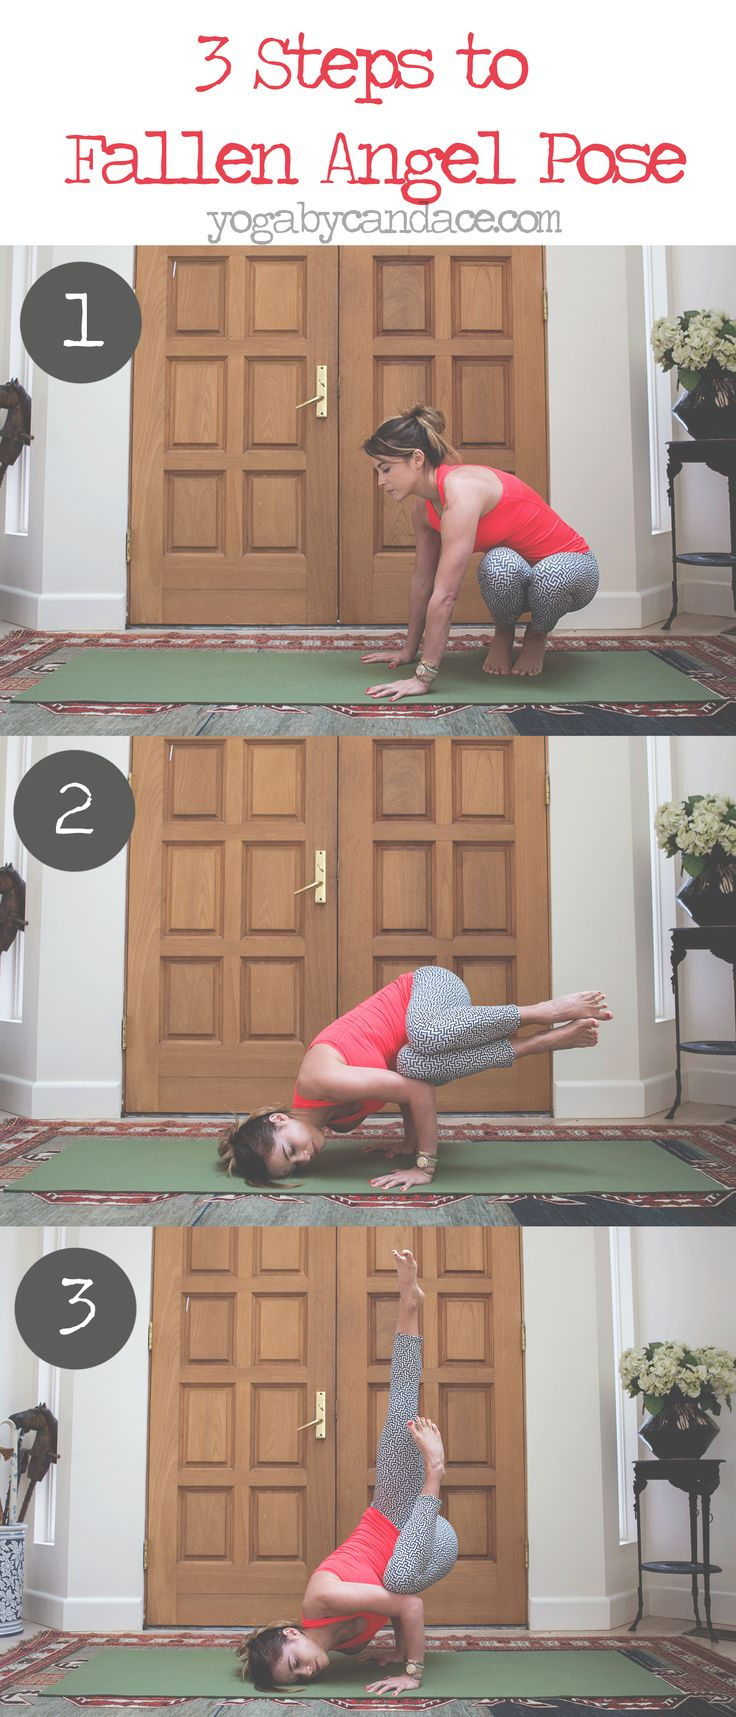 Pin now, practice fallen angel pose later!  Wearing: Onzie pants c/o, sweaty betty tank.